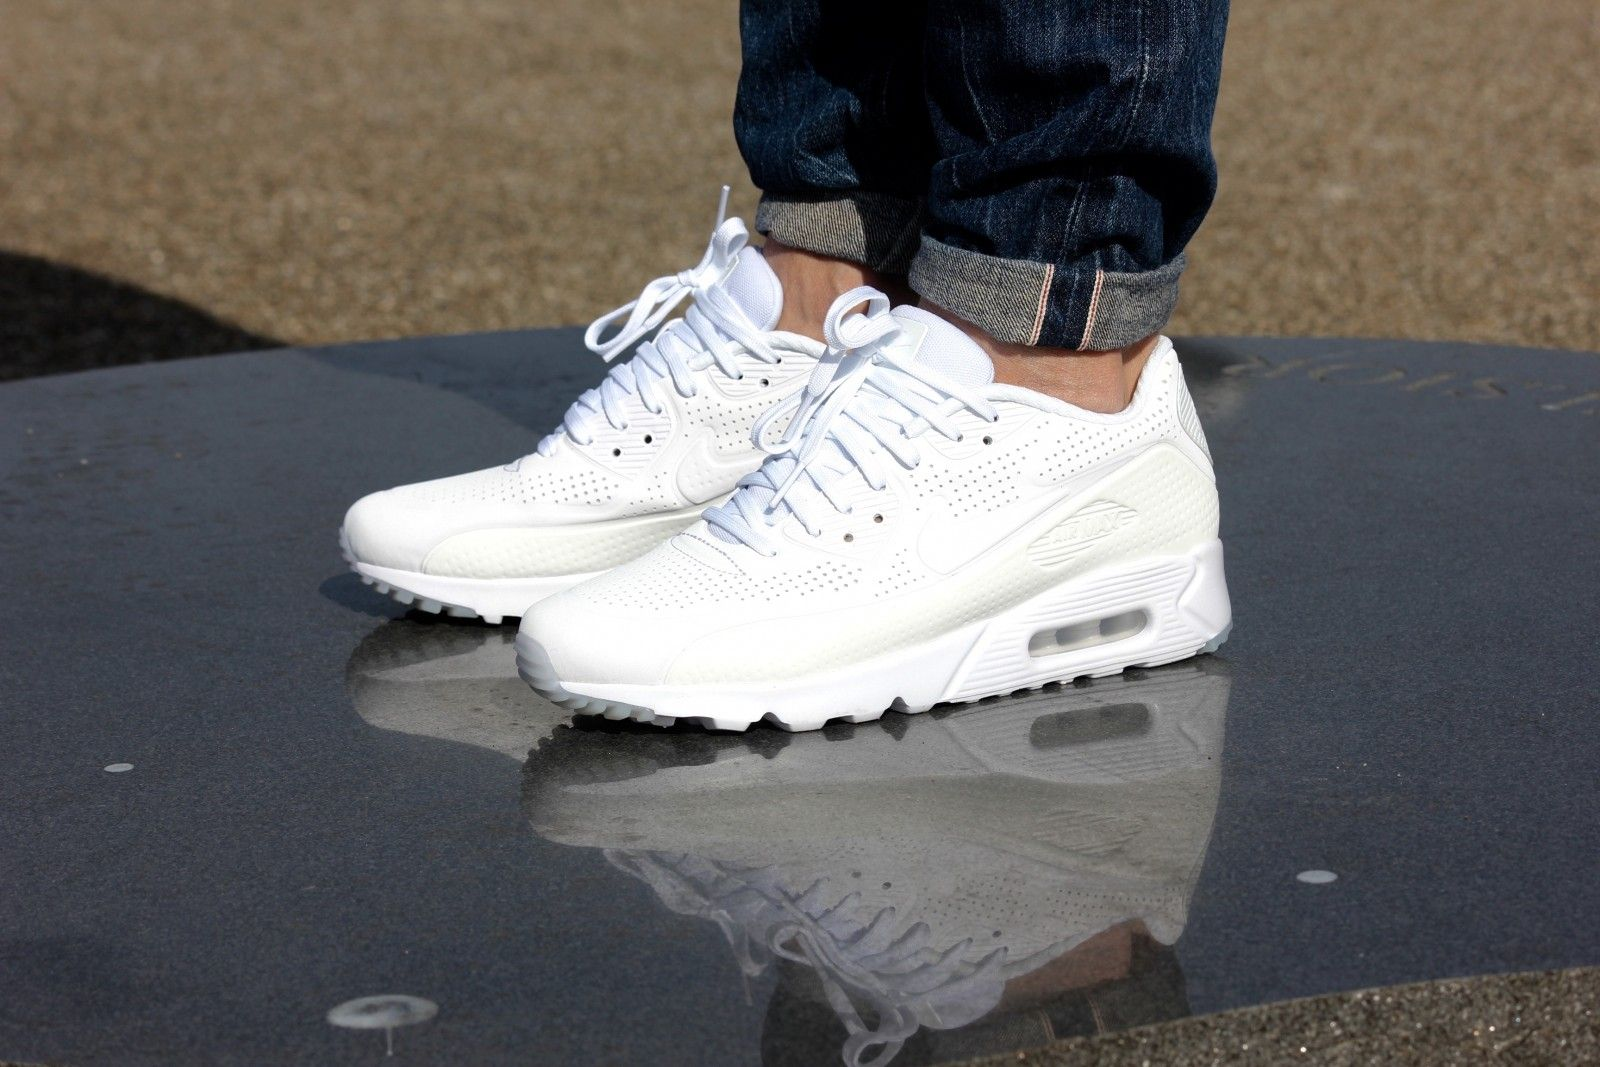 hot sale online c63bd 4834c Nike Air Max 90 Ultra Moire Triple White - 819477-111 ...